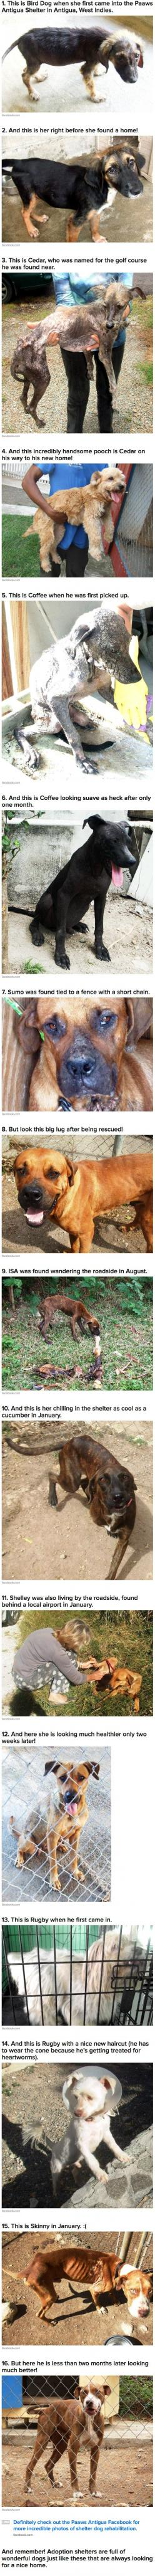 16 Incredible Transformation Photos Of Shelter Dogs »» http://www.facebook.com/paaws.antigua: Dogs Helping People, Animals Rescued, Happy Things Pictures, People Helping Animals, Animal Rescues, Animal Shelter